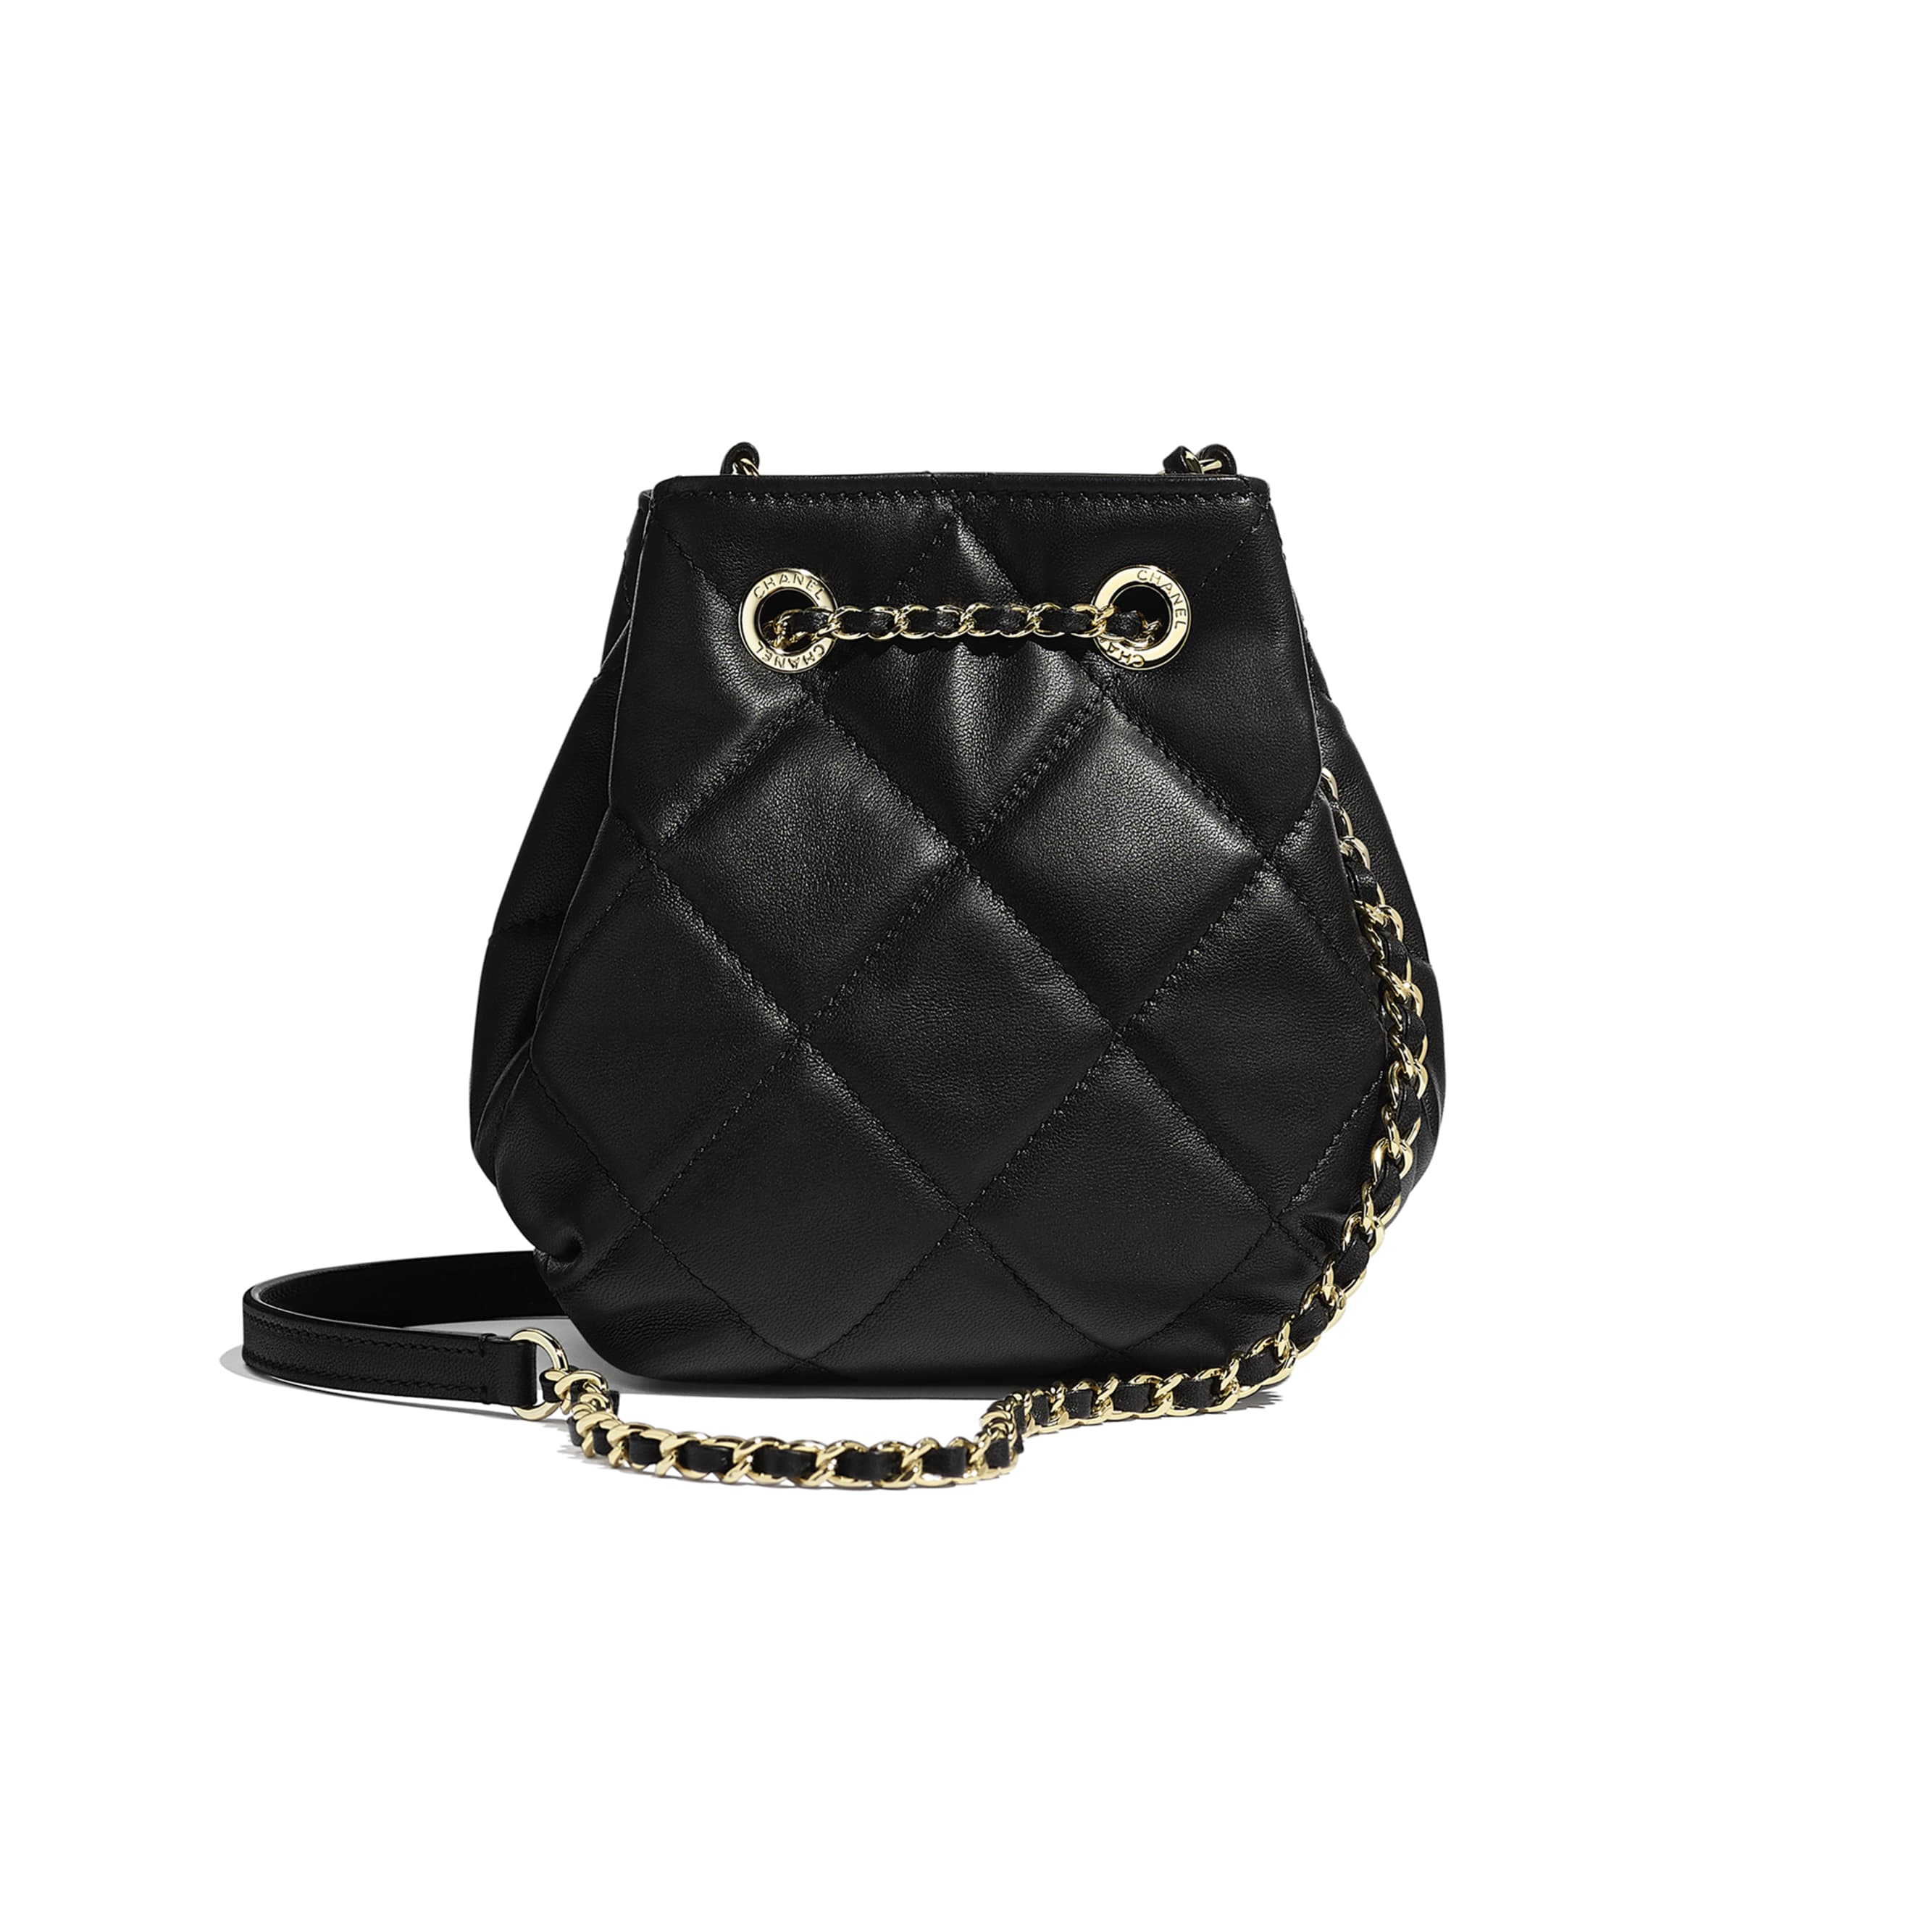 Small Drawstring Bag - Black - Lambskin - CHANEL - Alternative view - see standard sized version